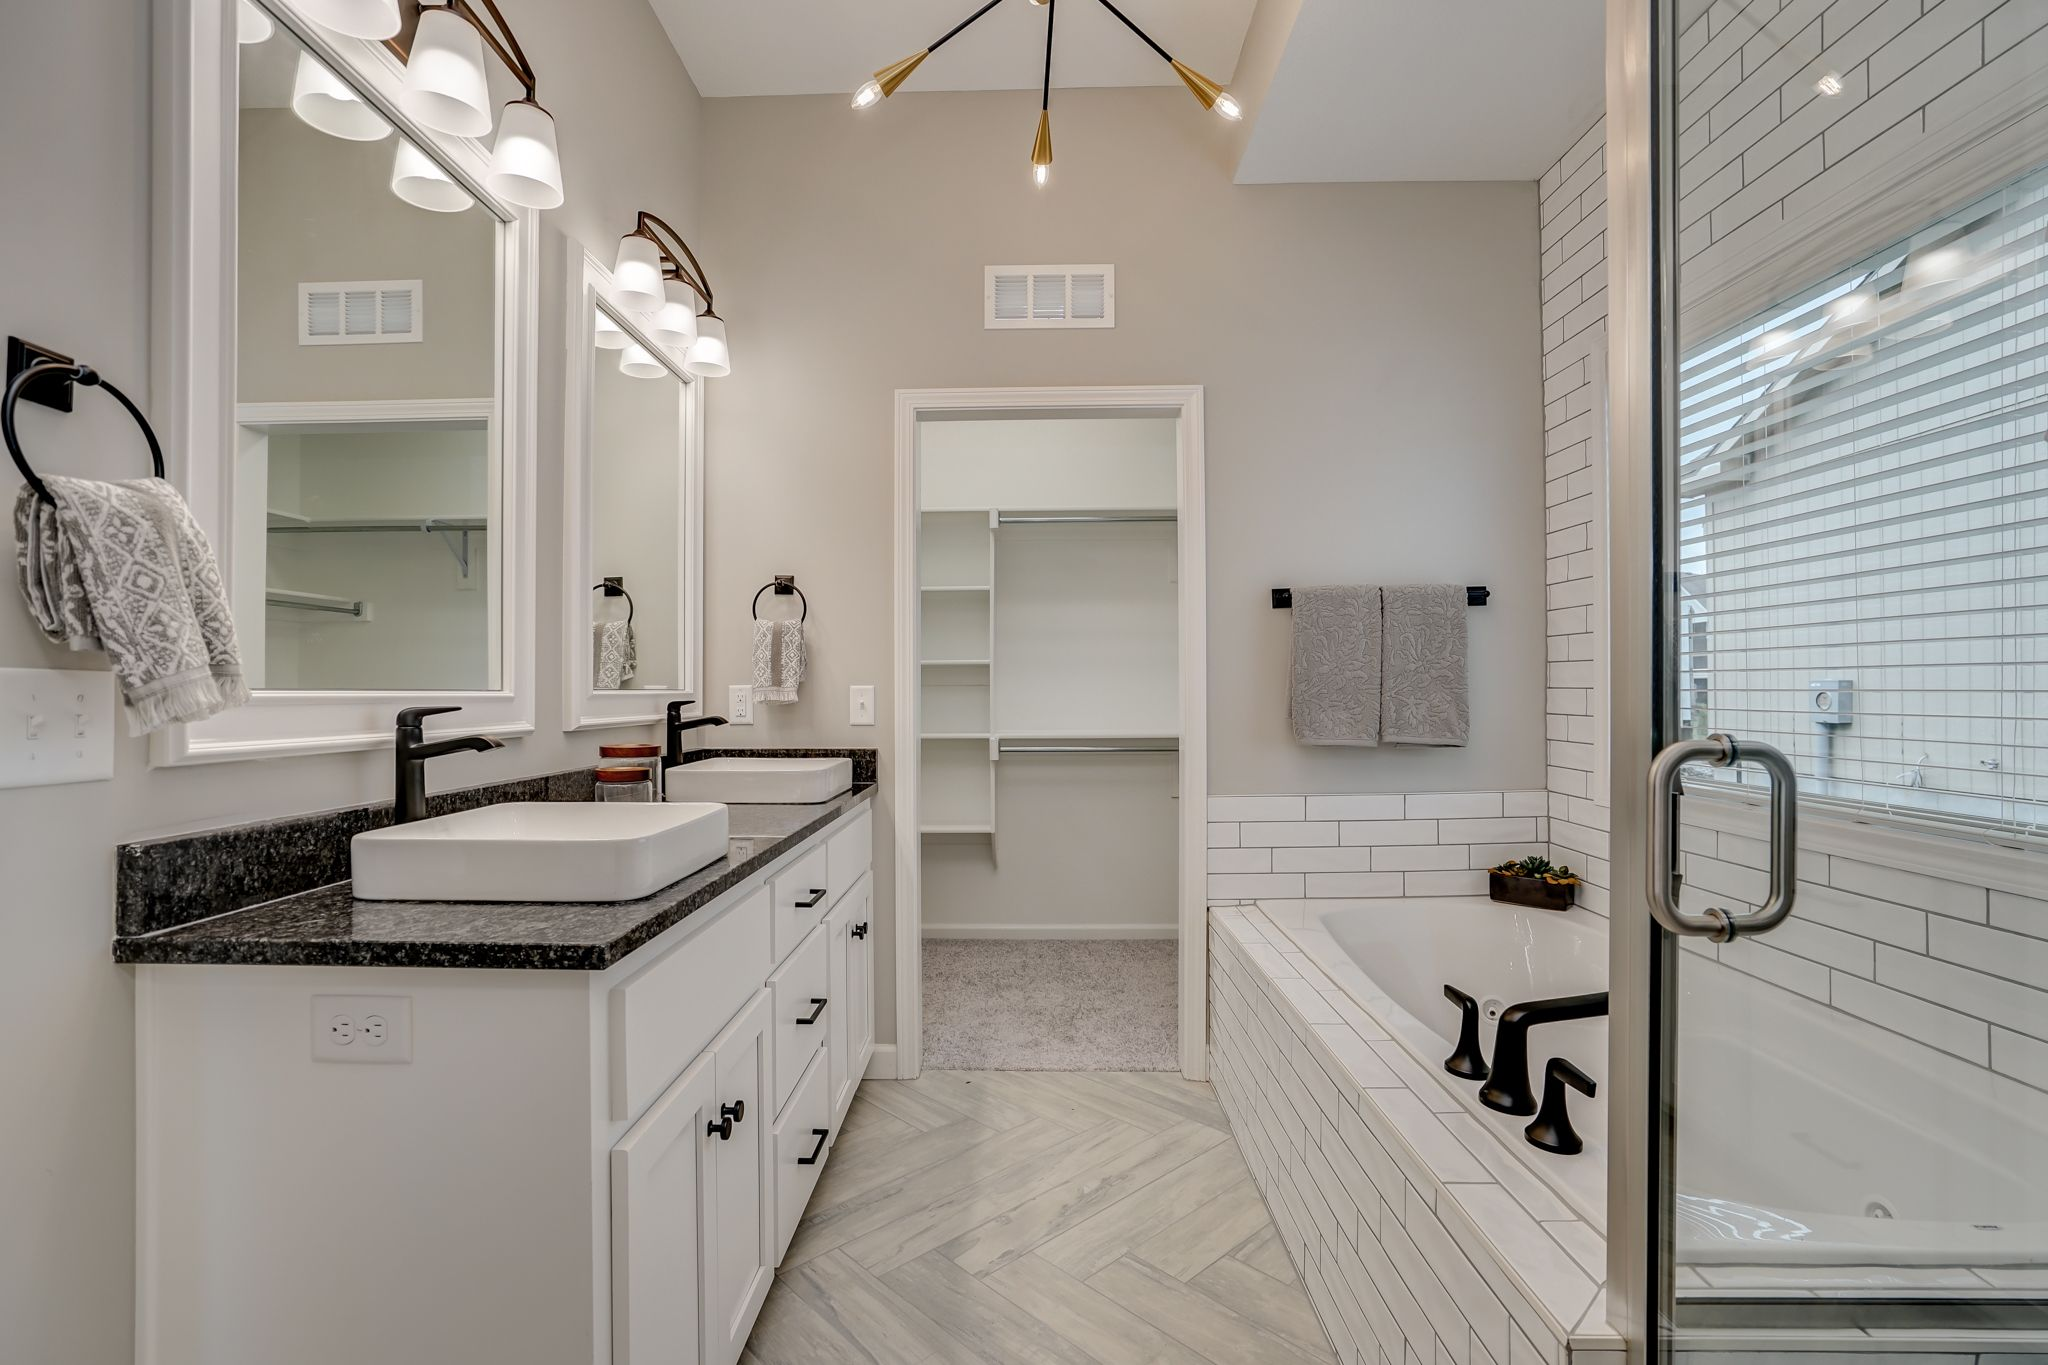 Bathroom featured in the Valentia By Summit Homes in Kansas City, KS